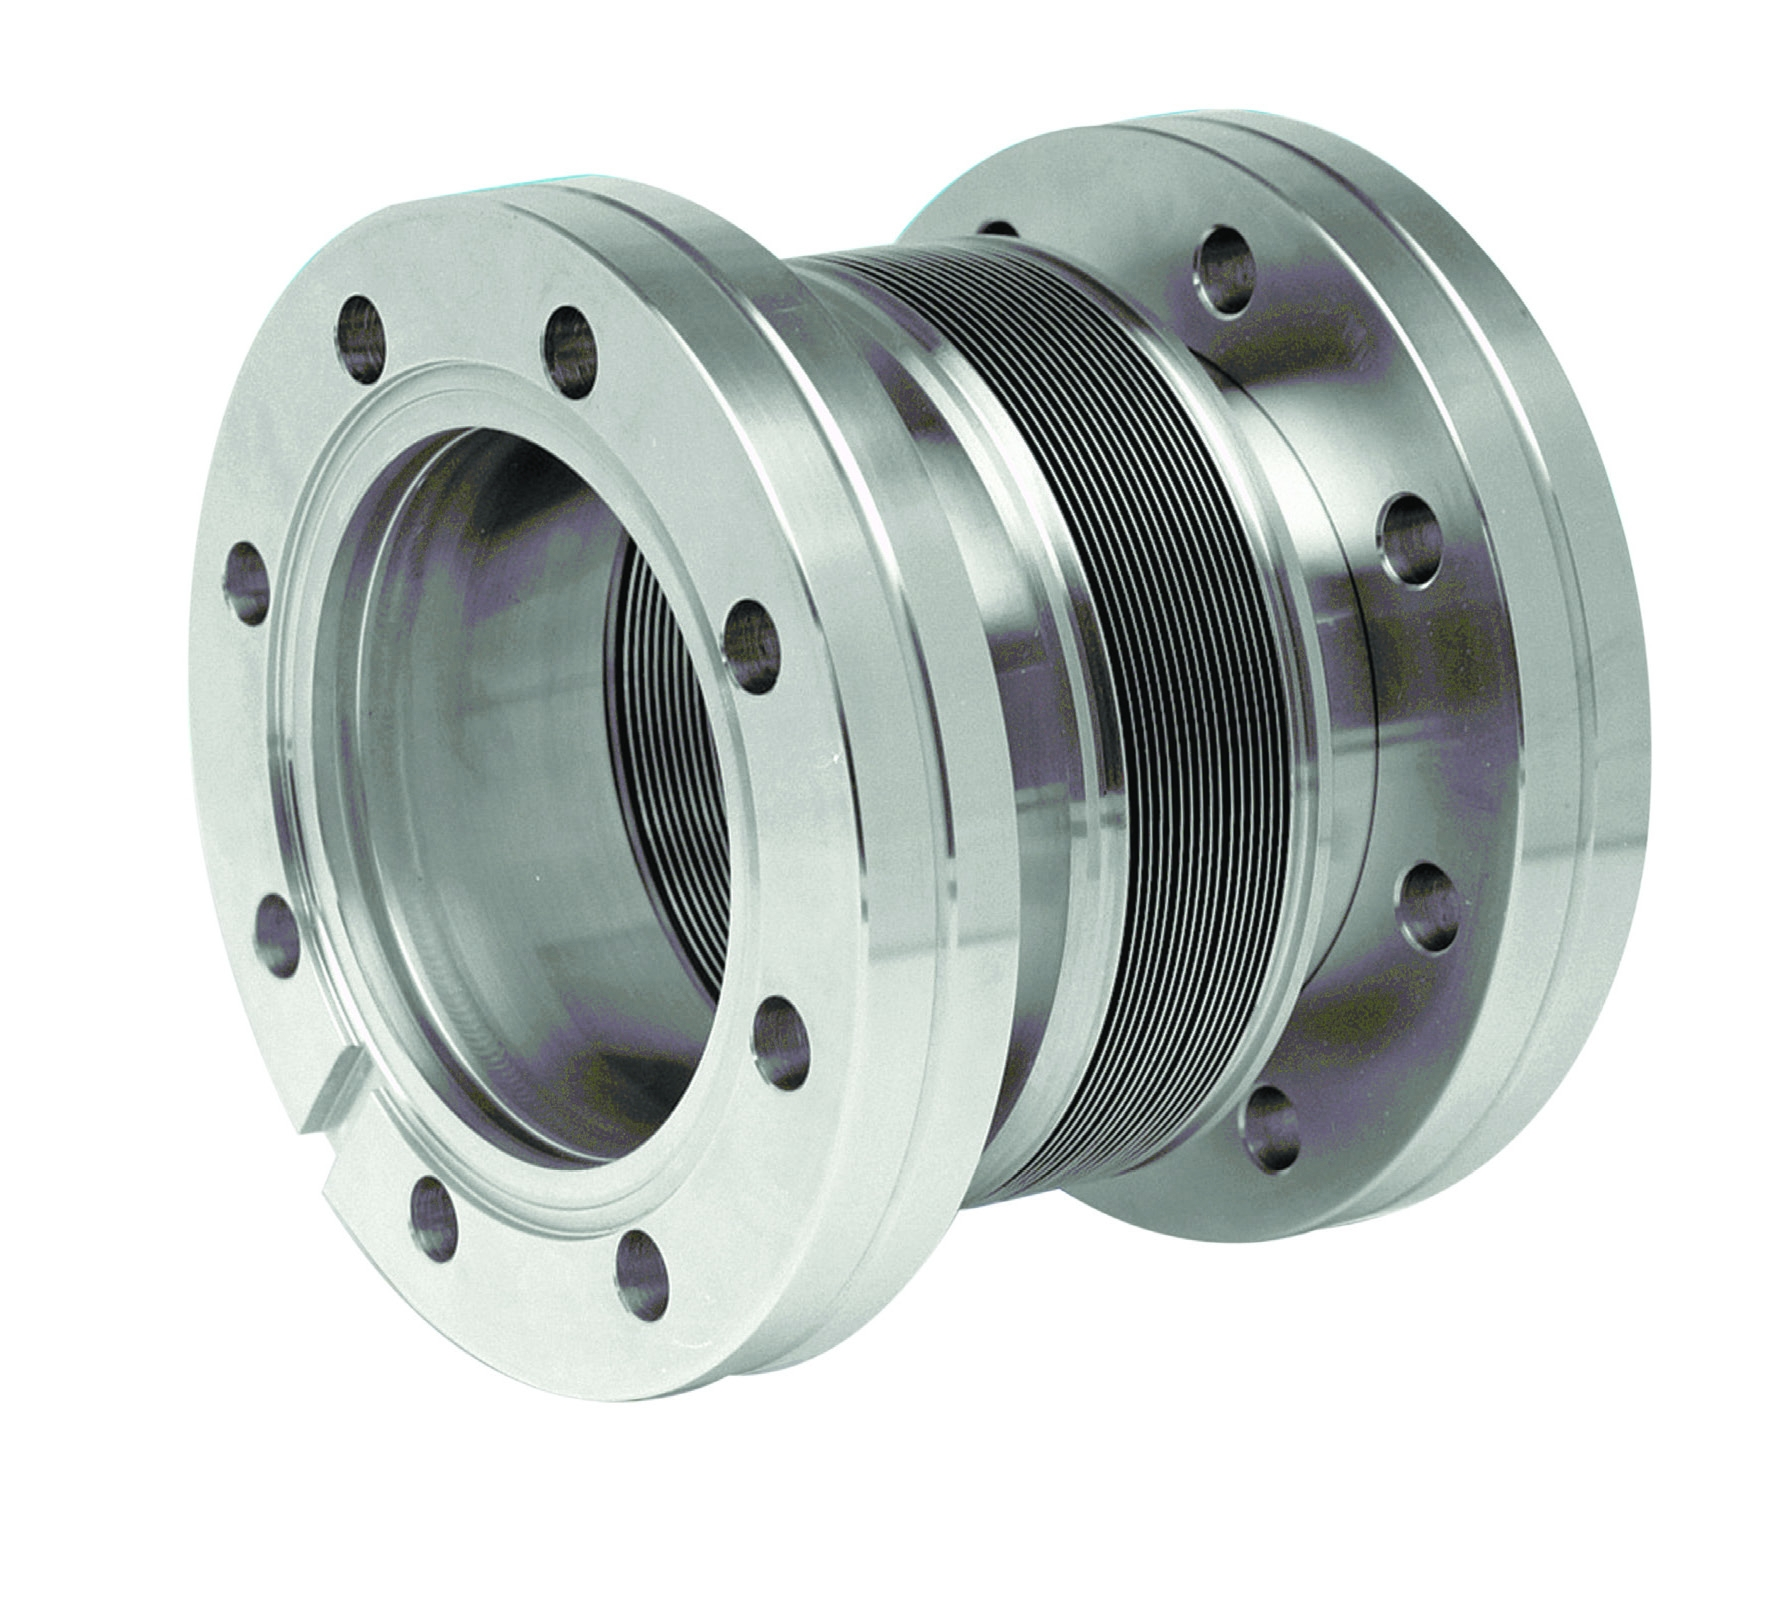 Edge welded bellow with DN100CF flanges, L = 101 - 201mm